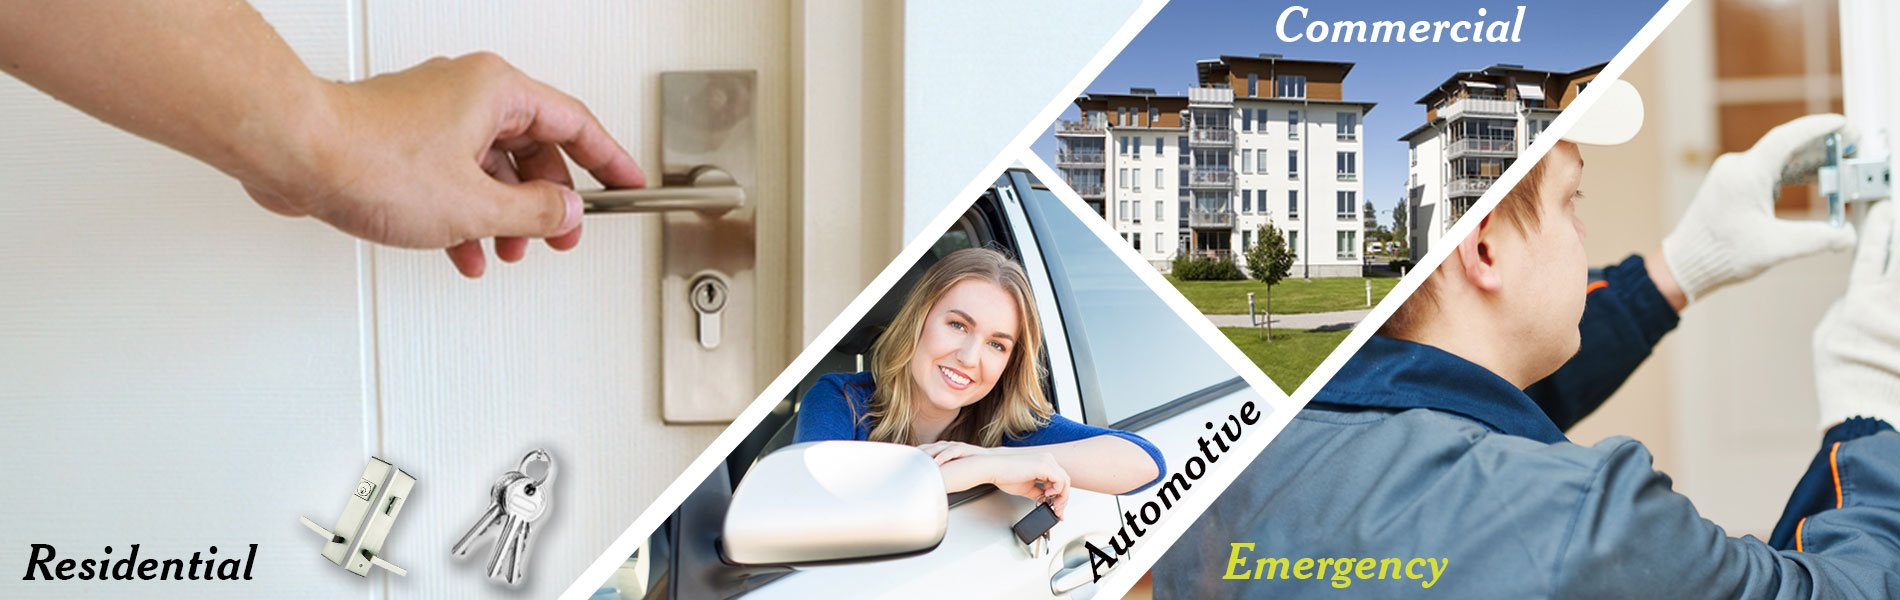 Safe Key Locksmith Service Claremont, CA 909-329-2172